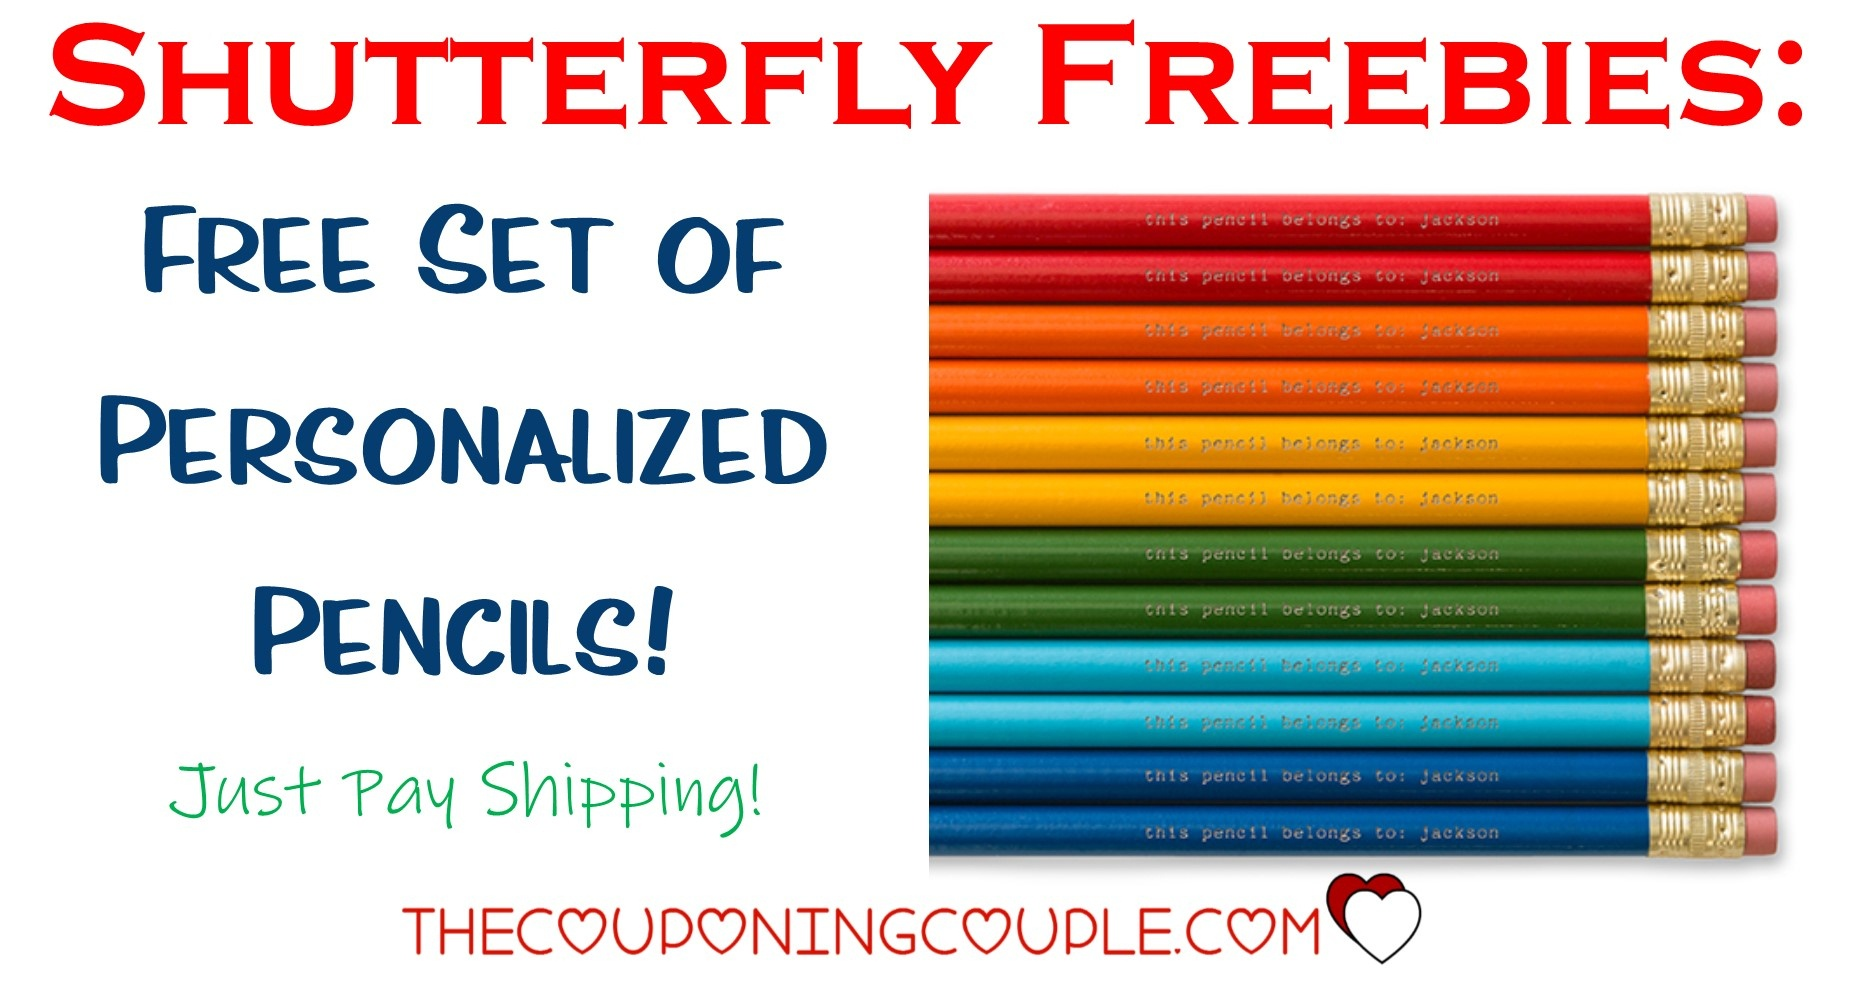 Shutterfly Freebies 2018 - Free Printable Coupons For Bojangles